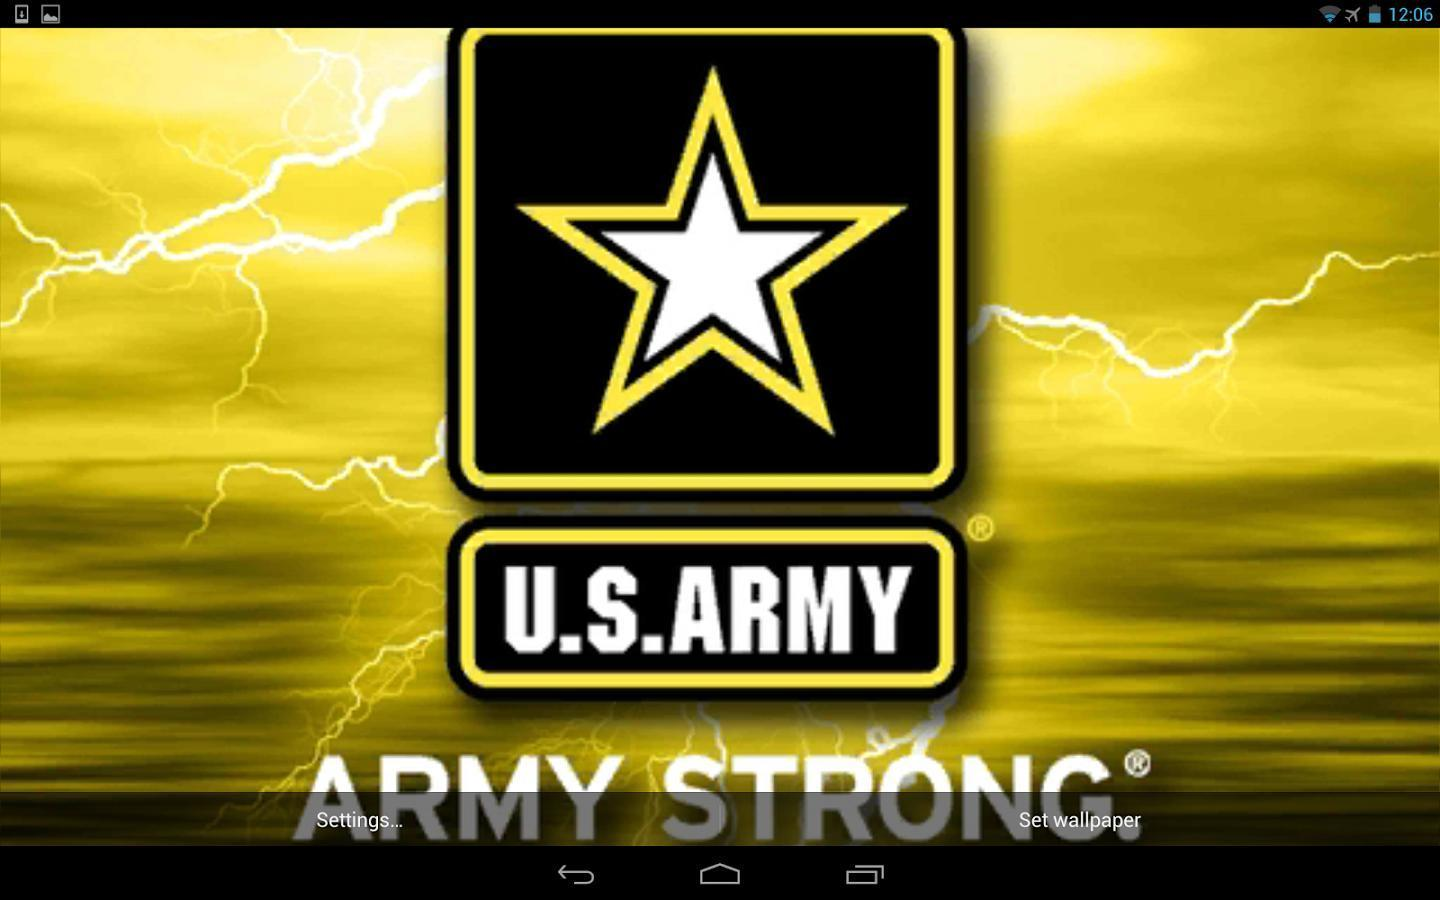 Wallpaper: Download Us Army Wallpaper. Us Army Wallpapers